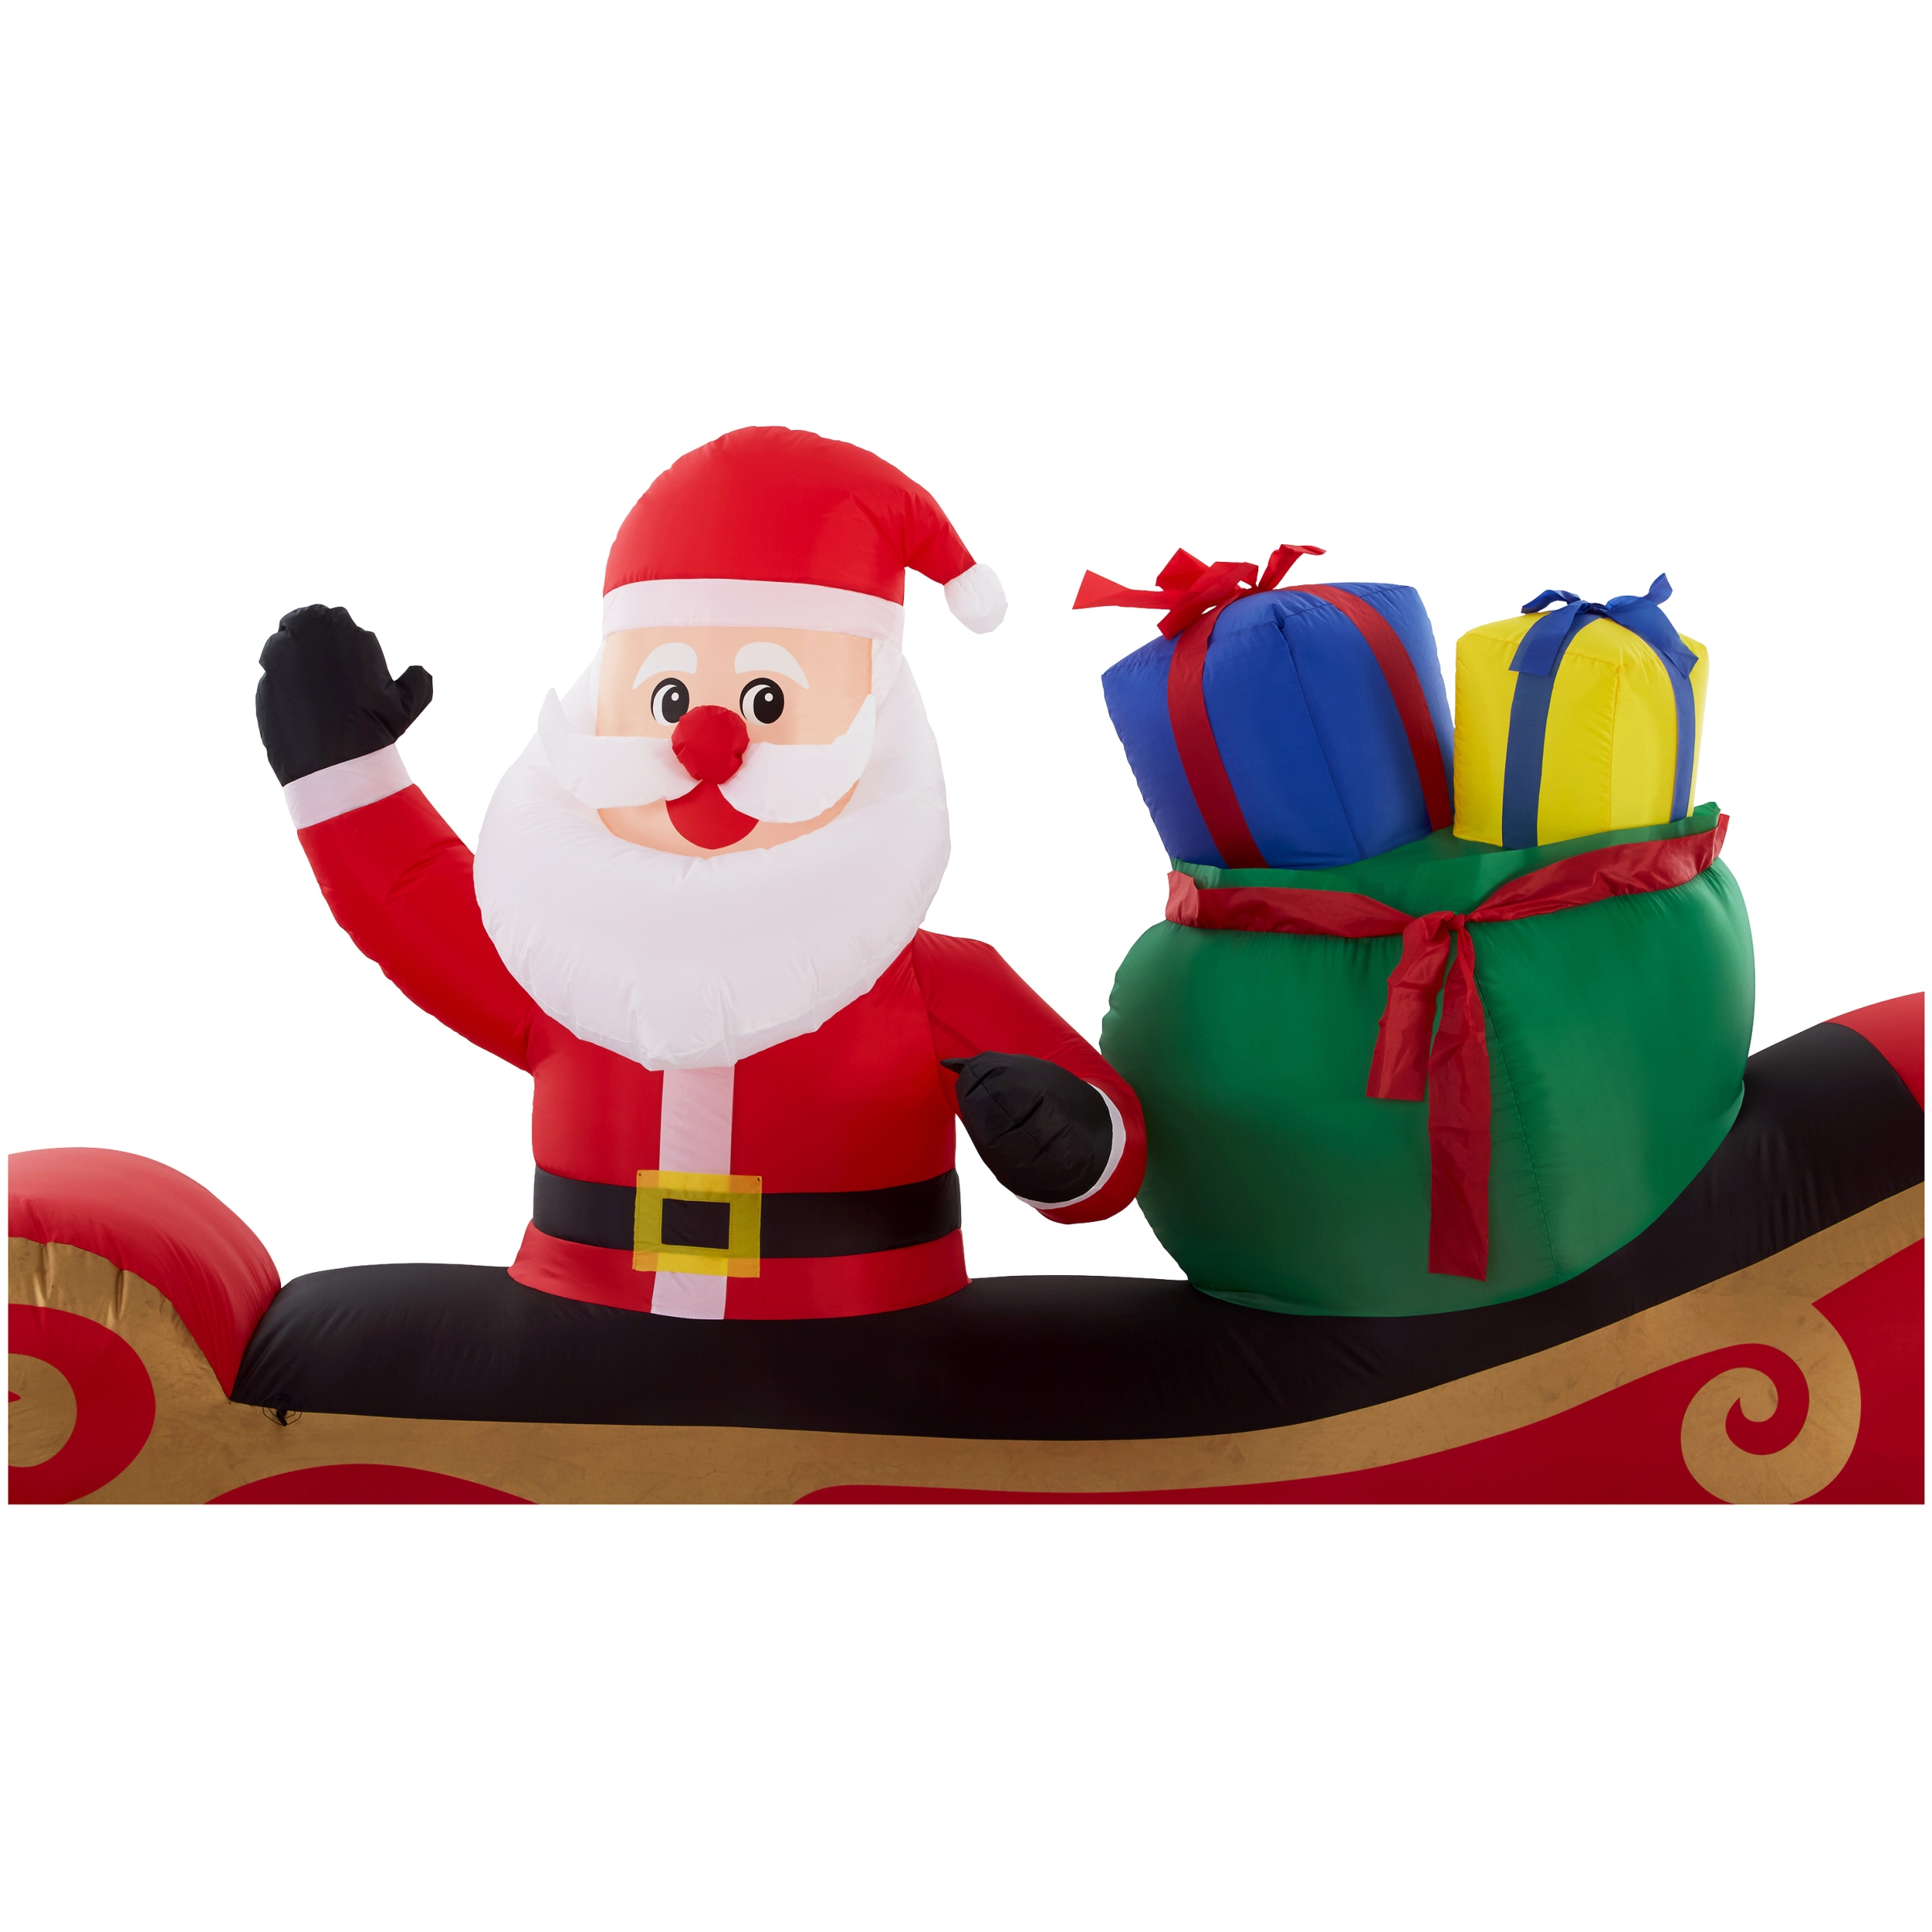 10 Ft Inflatable Santa in Sleigh Indoor Outdoor Christmas Holiday ...